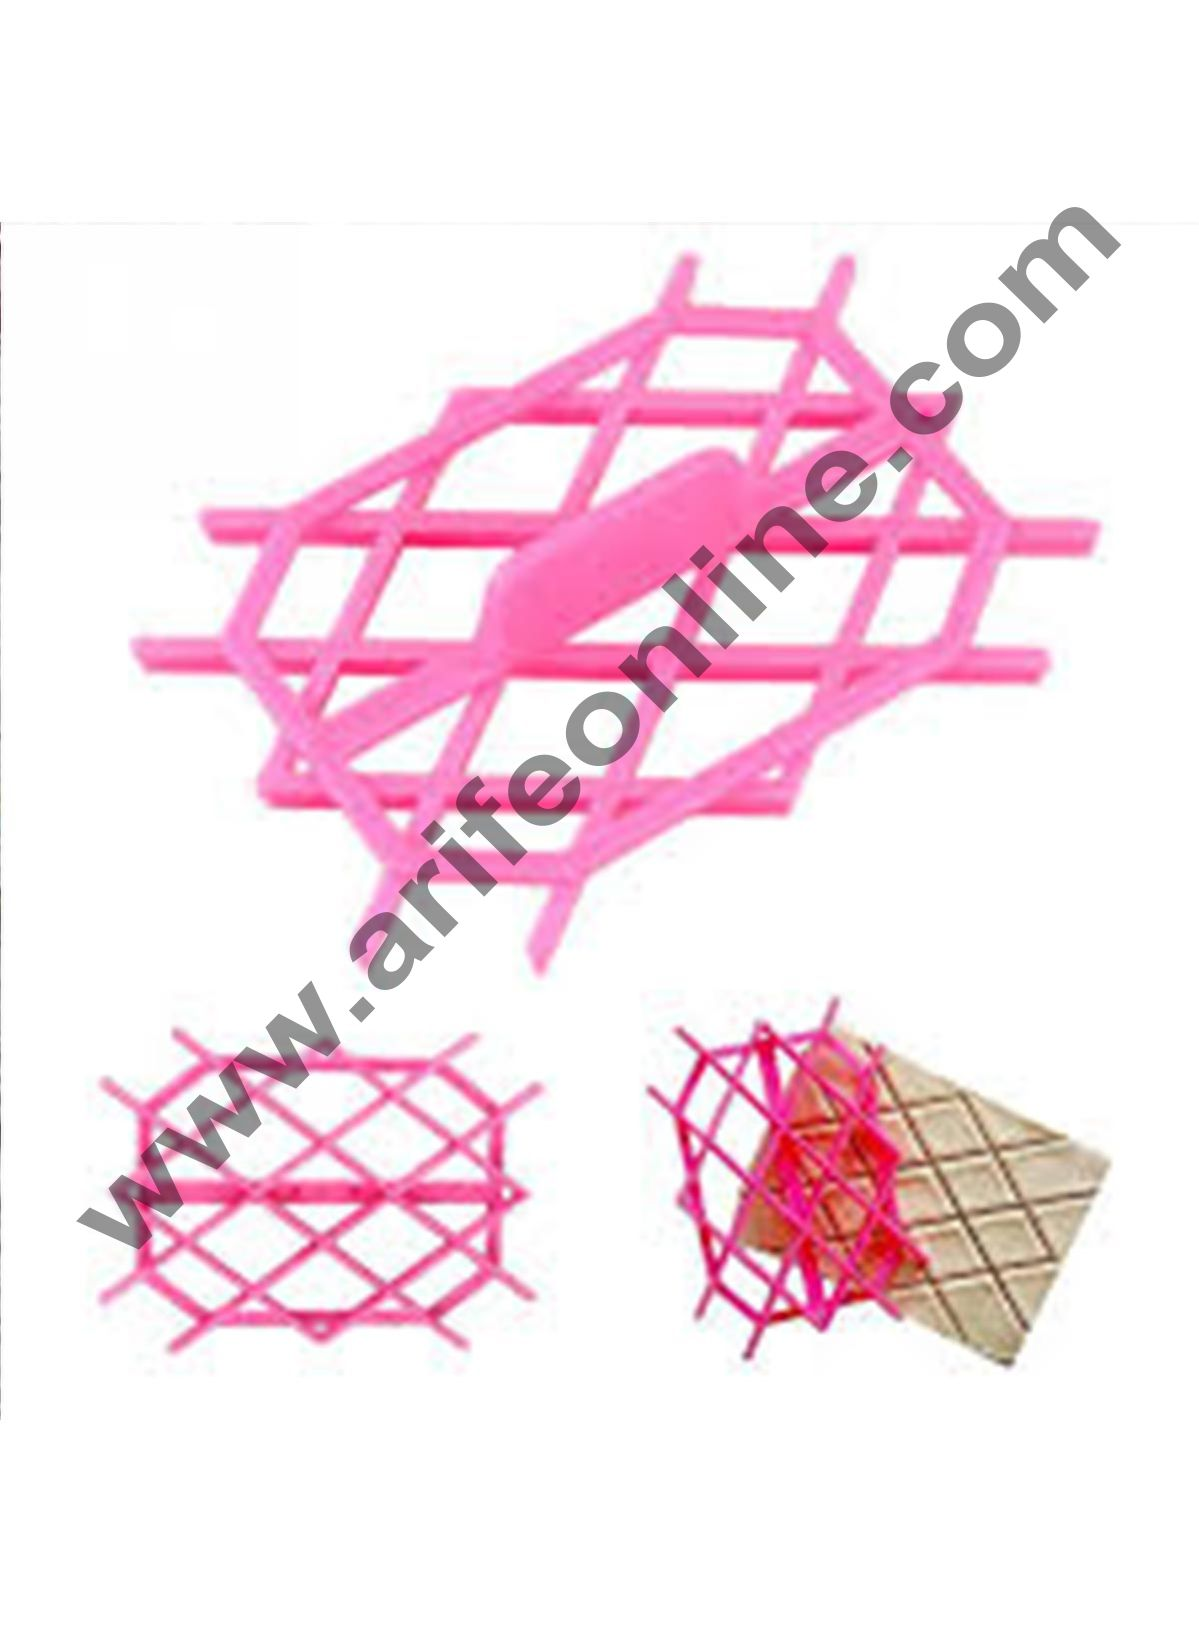 Cake Decor Fondant Quilt Square Cutter Cake Cupcake Embossing Decorating Tool Embosser cookie mold